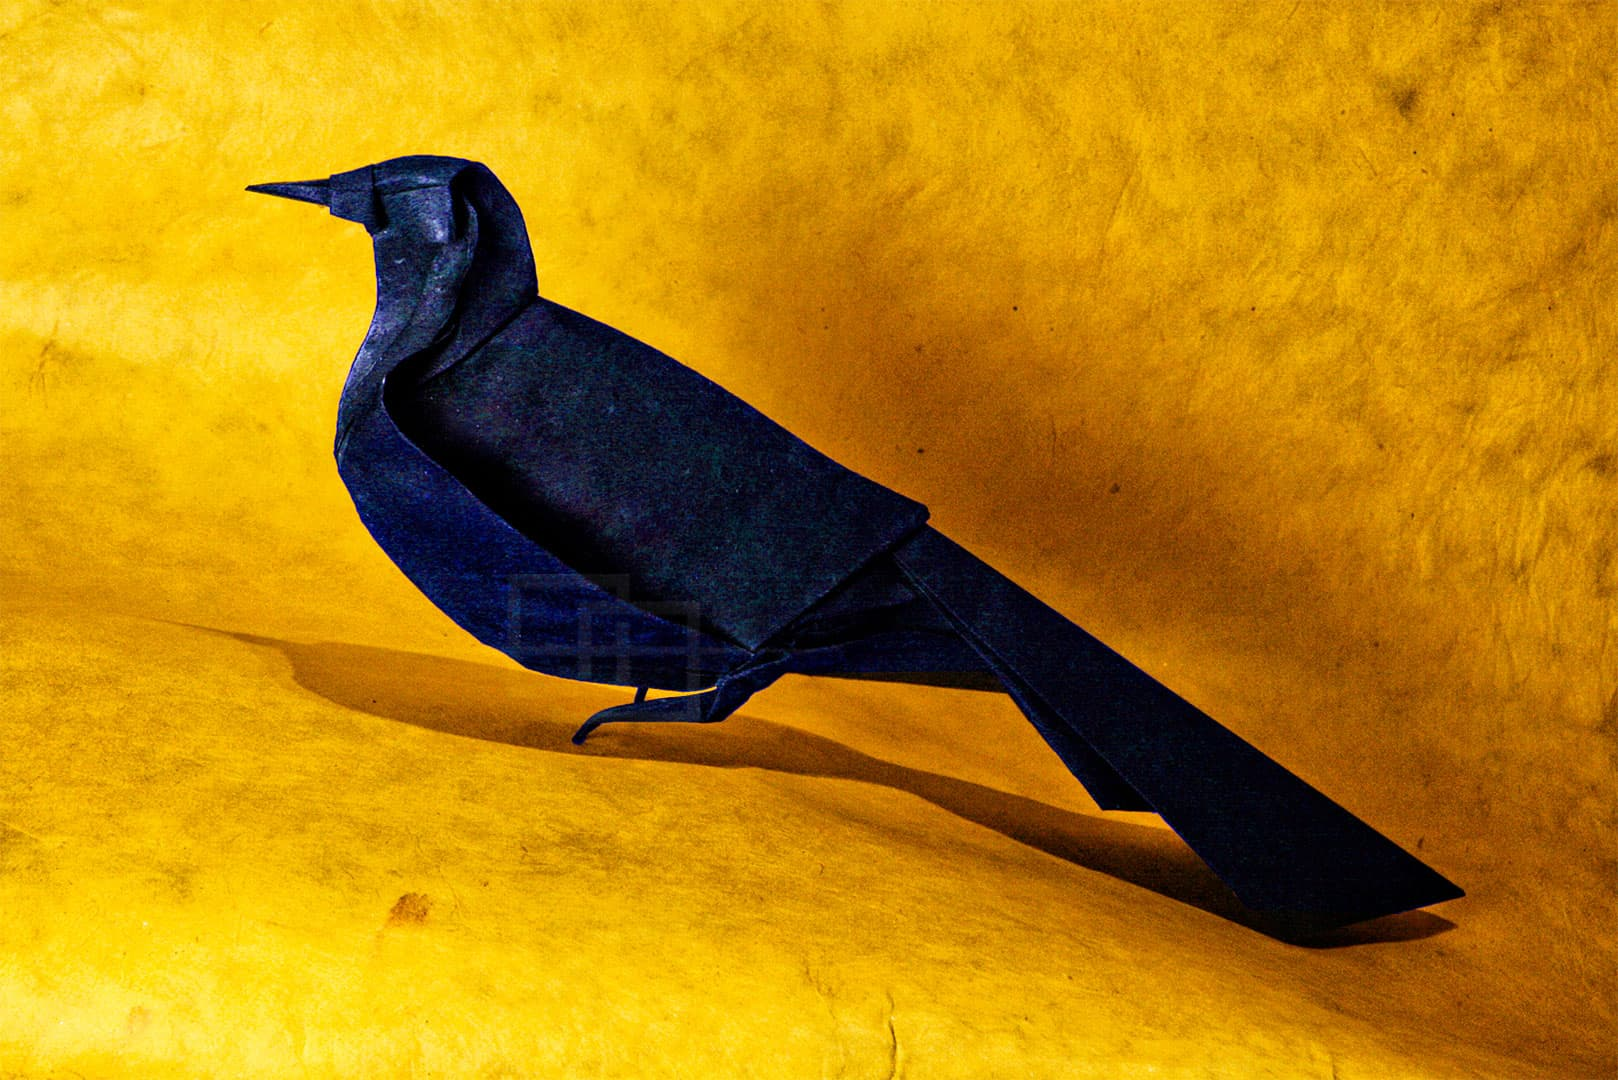 Michael LaFosse Origami Grackle by Himanshu Mumbai India orukami